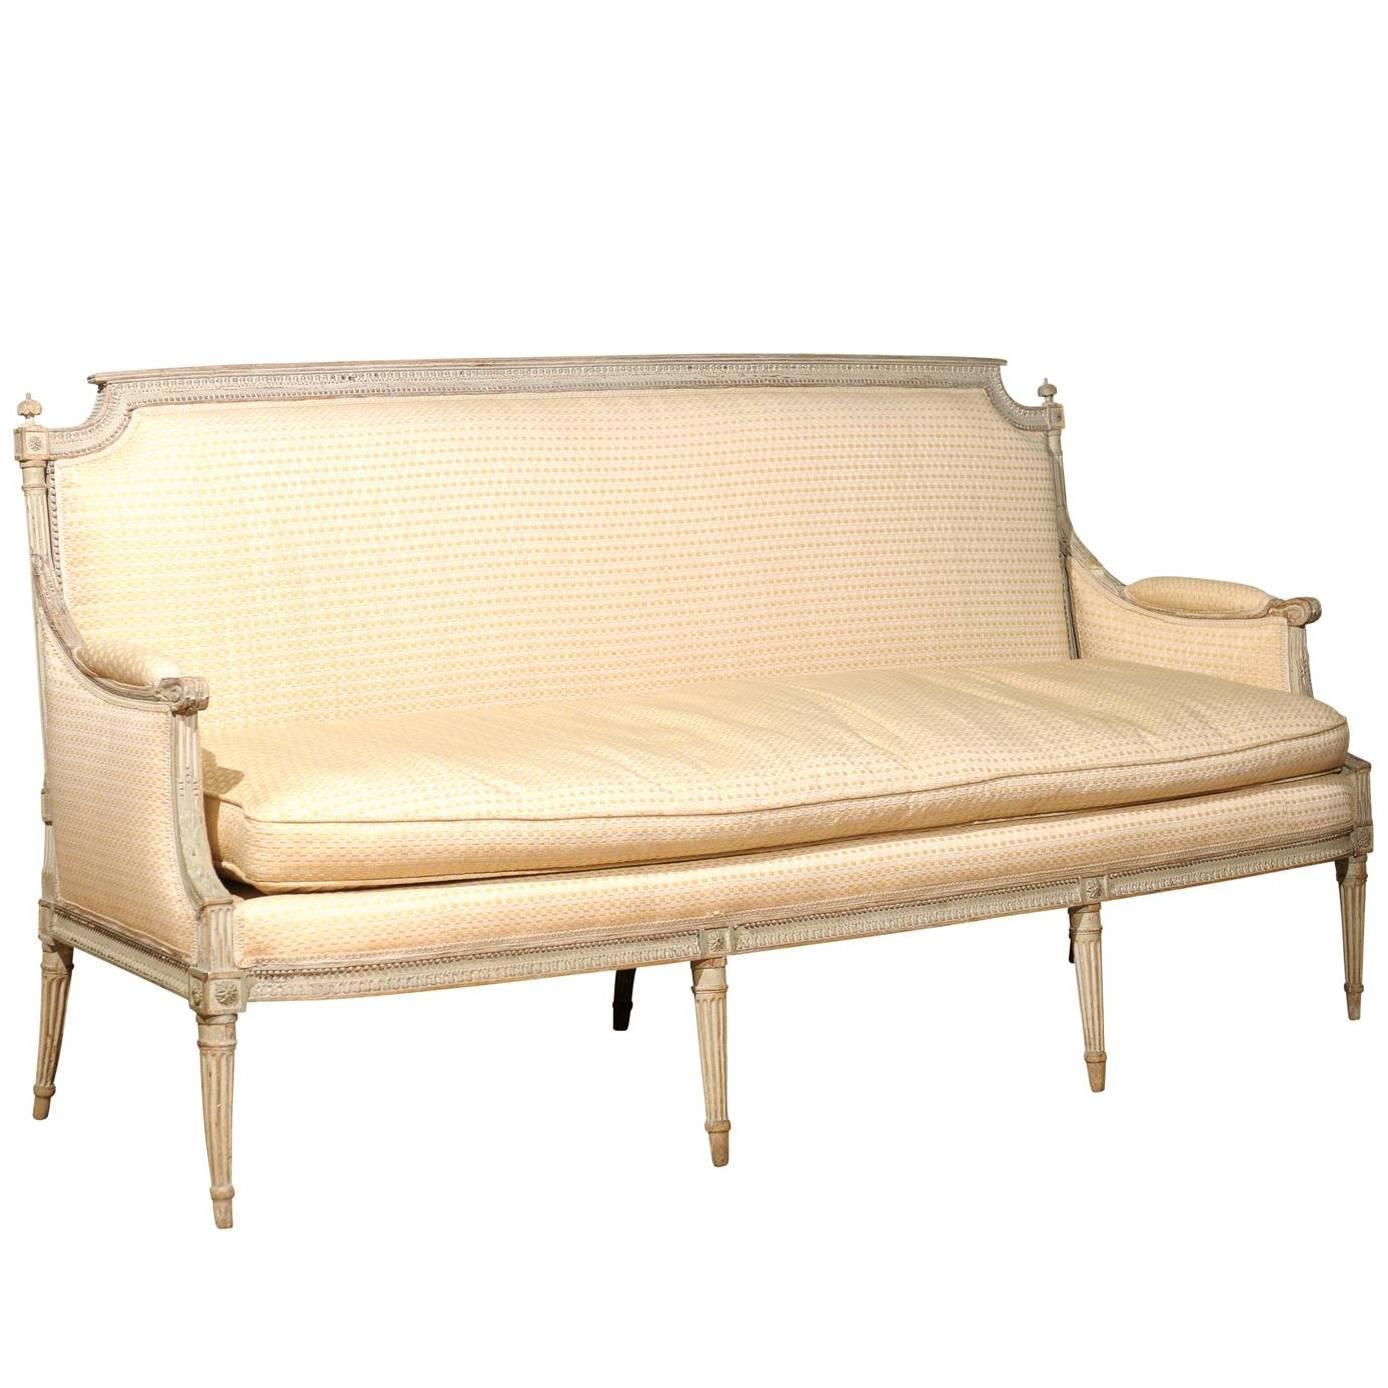 Early 19th century louis xiv sofa for sale at 1stdibs - Louis xiv sofa ...